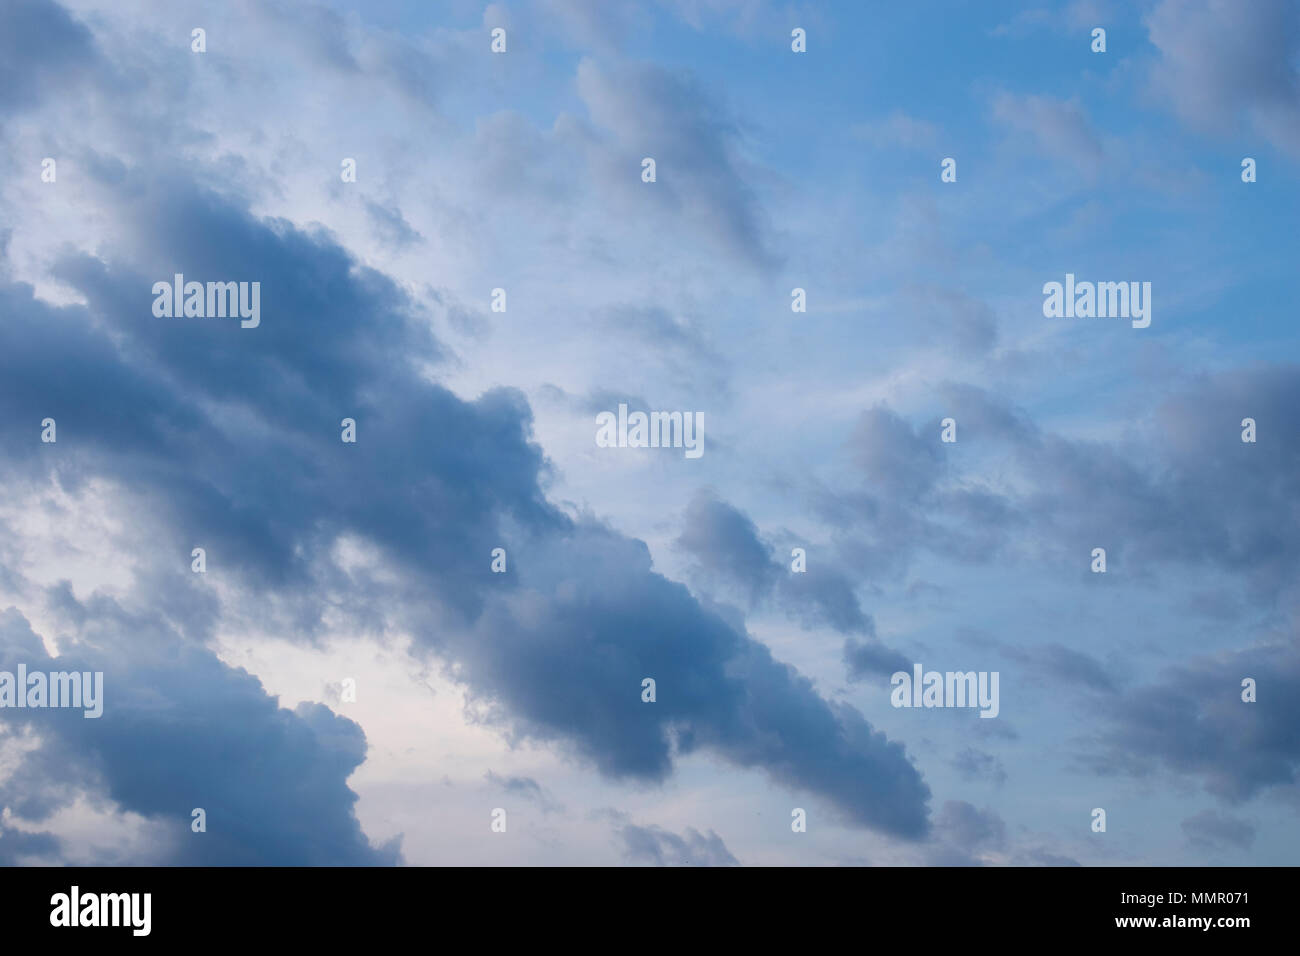 Storm is coming, clouds apear - Stock Image